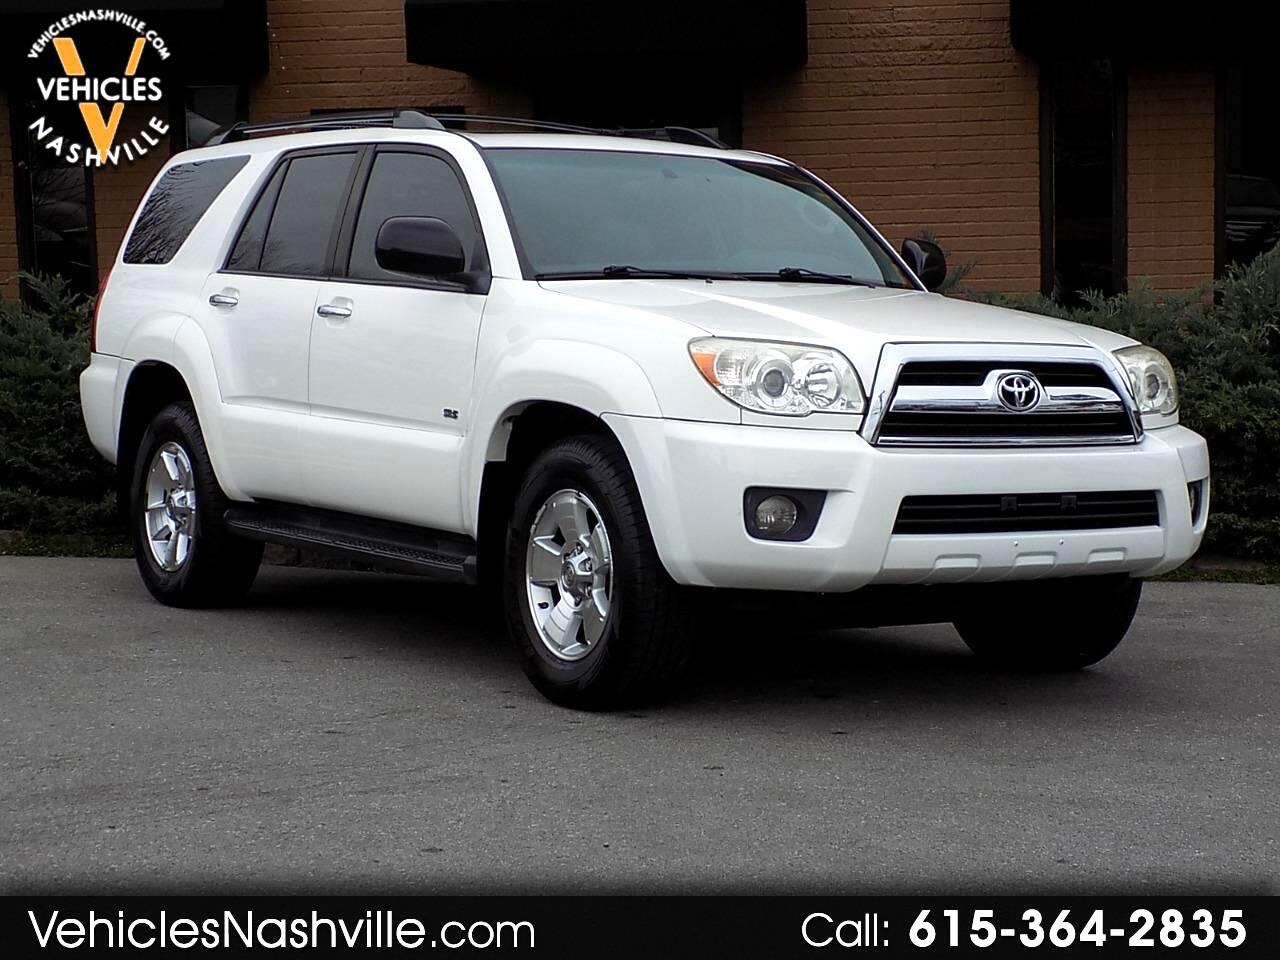 2008 Toyota 4Runner 4dr Limited V6 Auto (Natl)